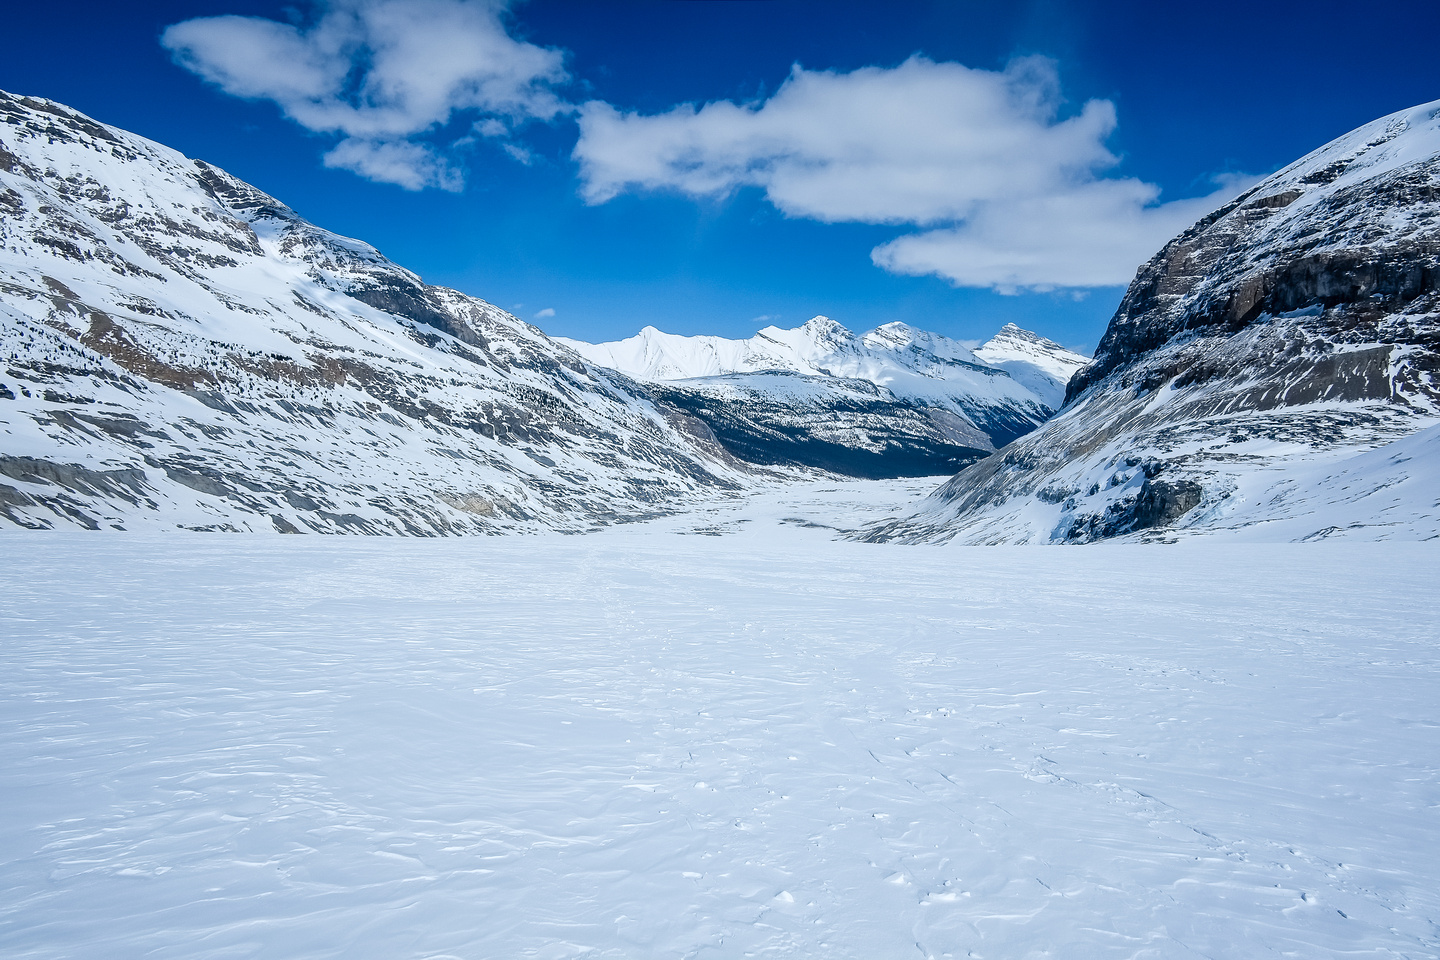 Nearing the toe of the Saskatchewan Glacier.